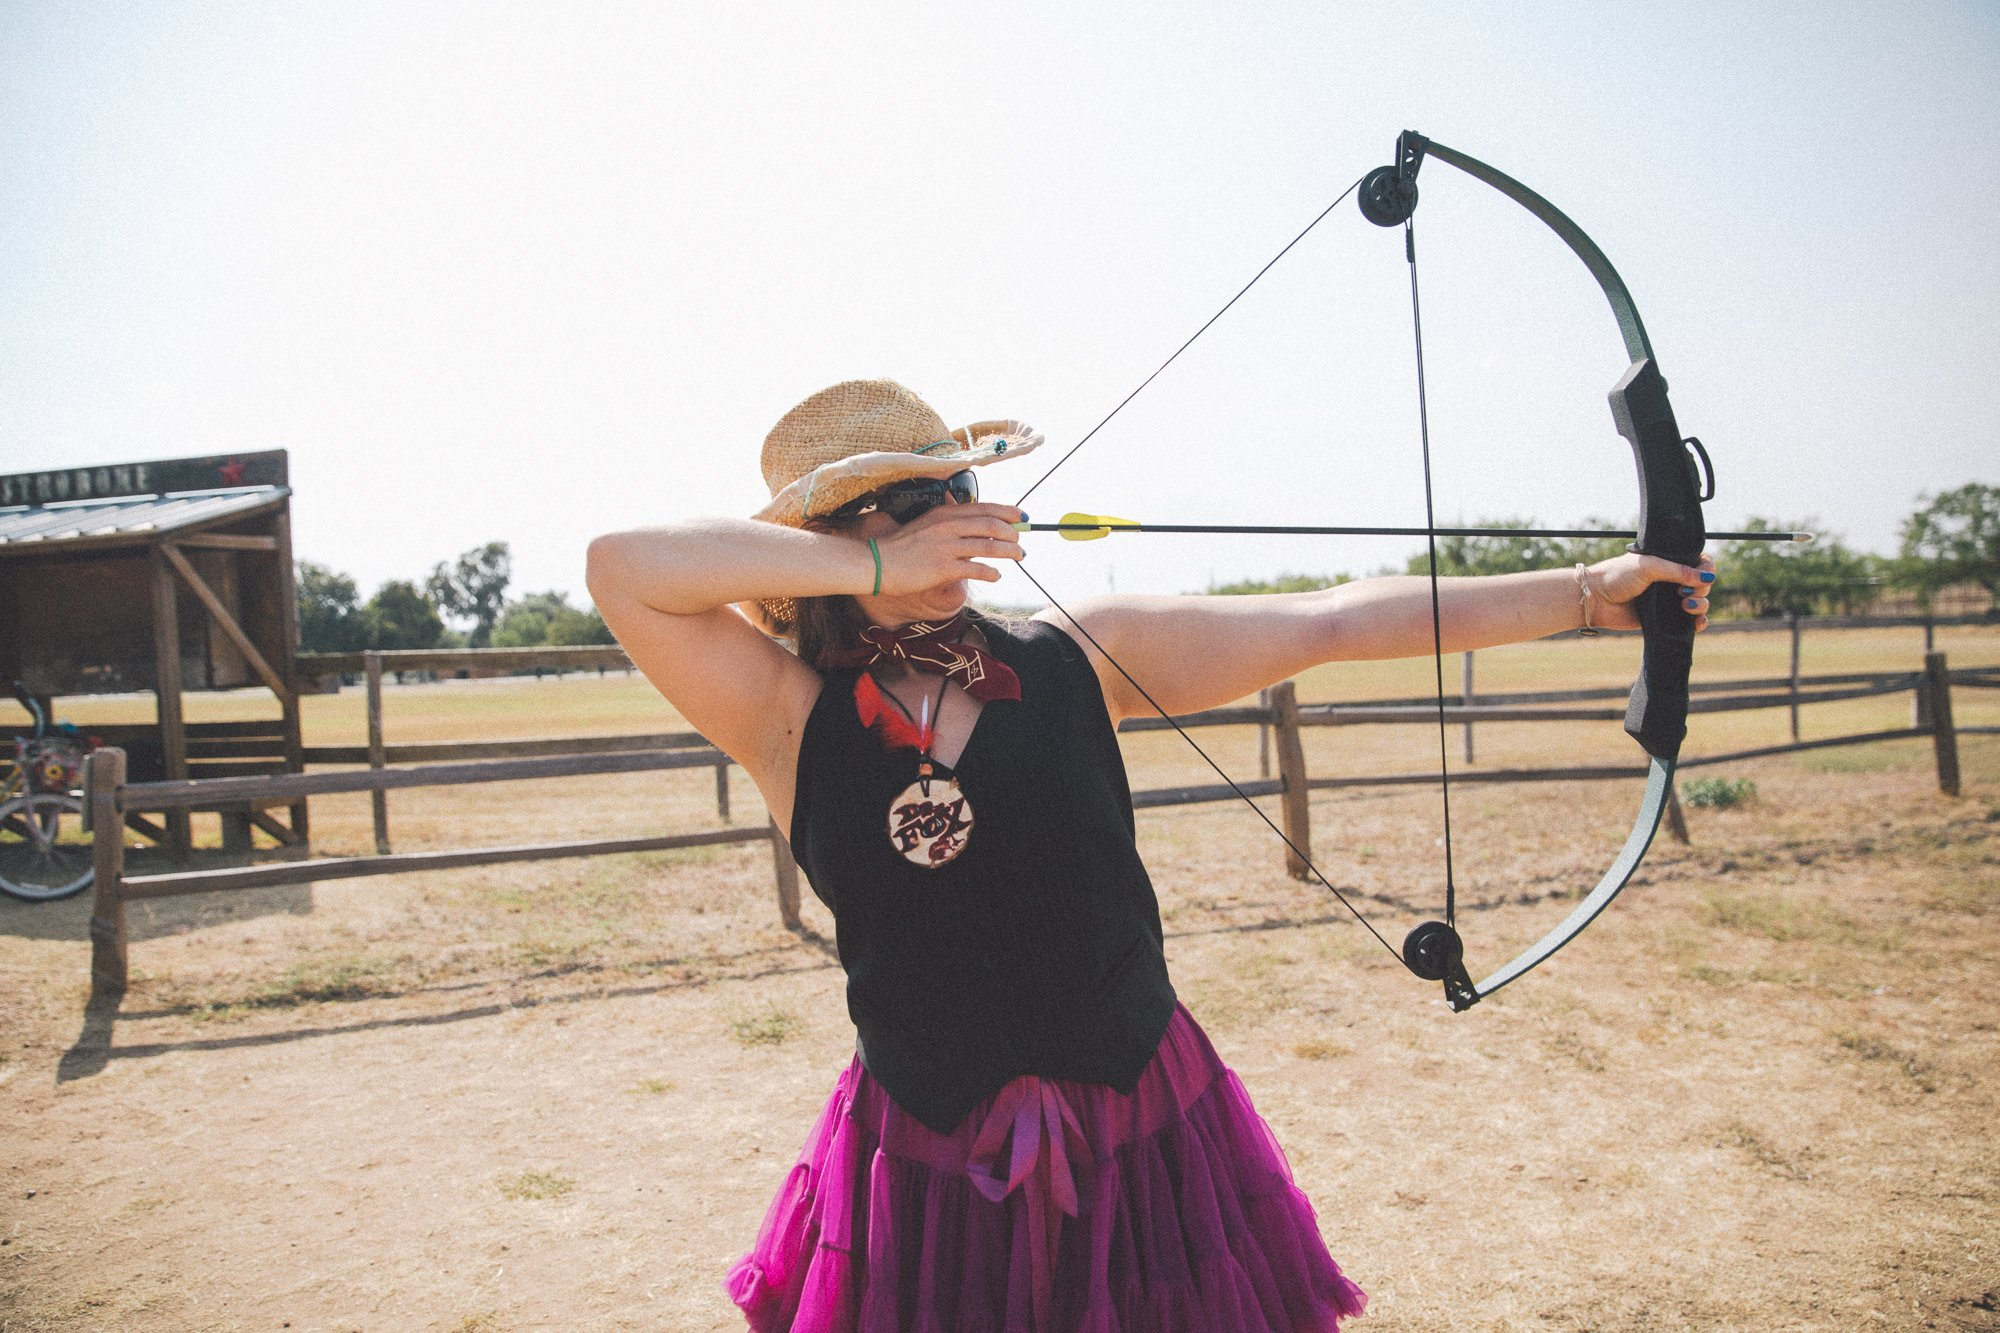 Woman in a cowboy hat shooting a bow and arrow